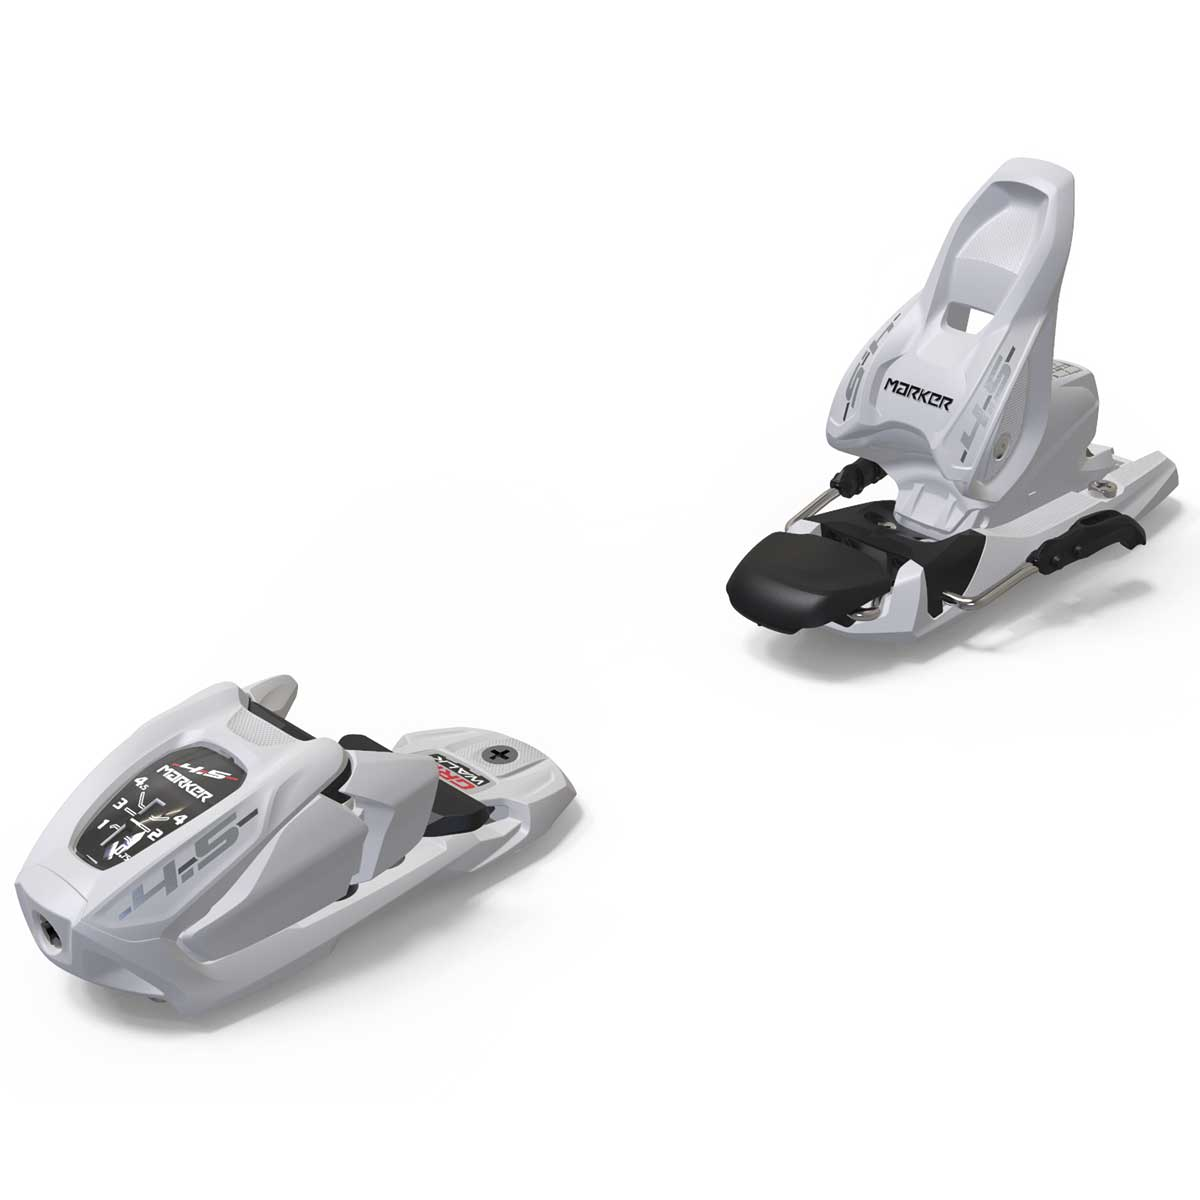 Marker 4.5 junior ski binding in white